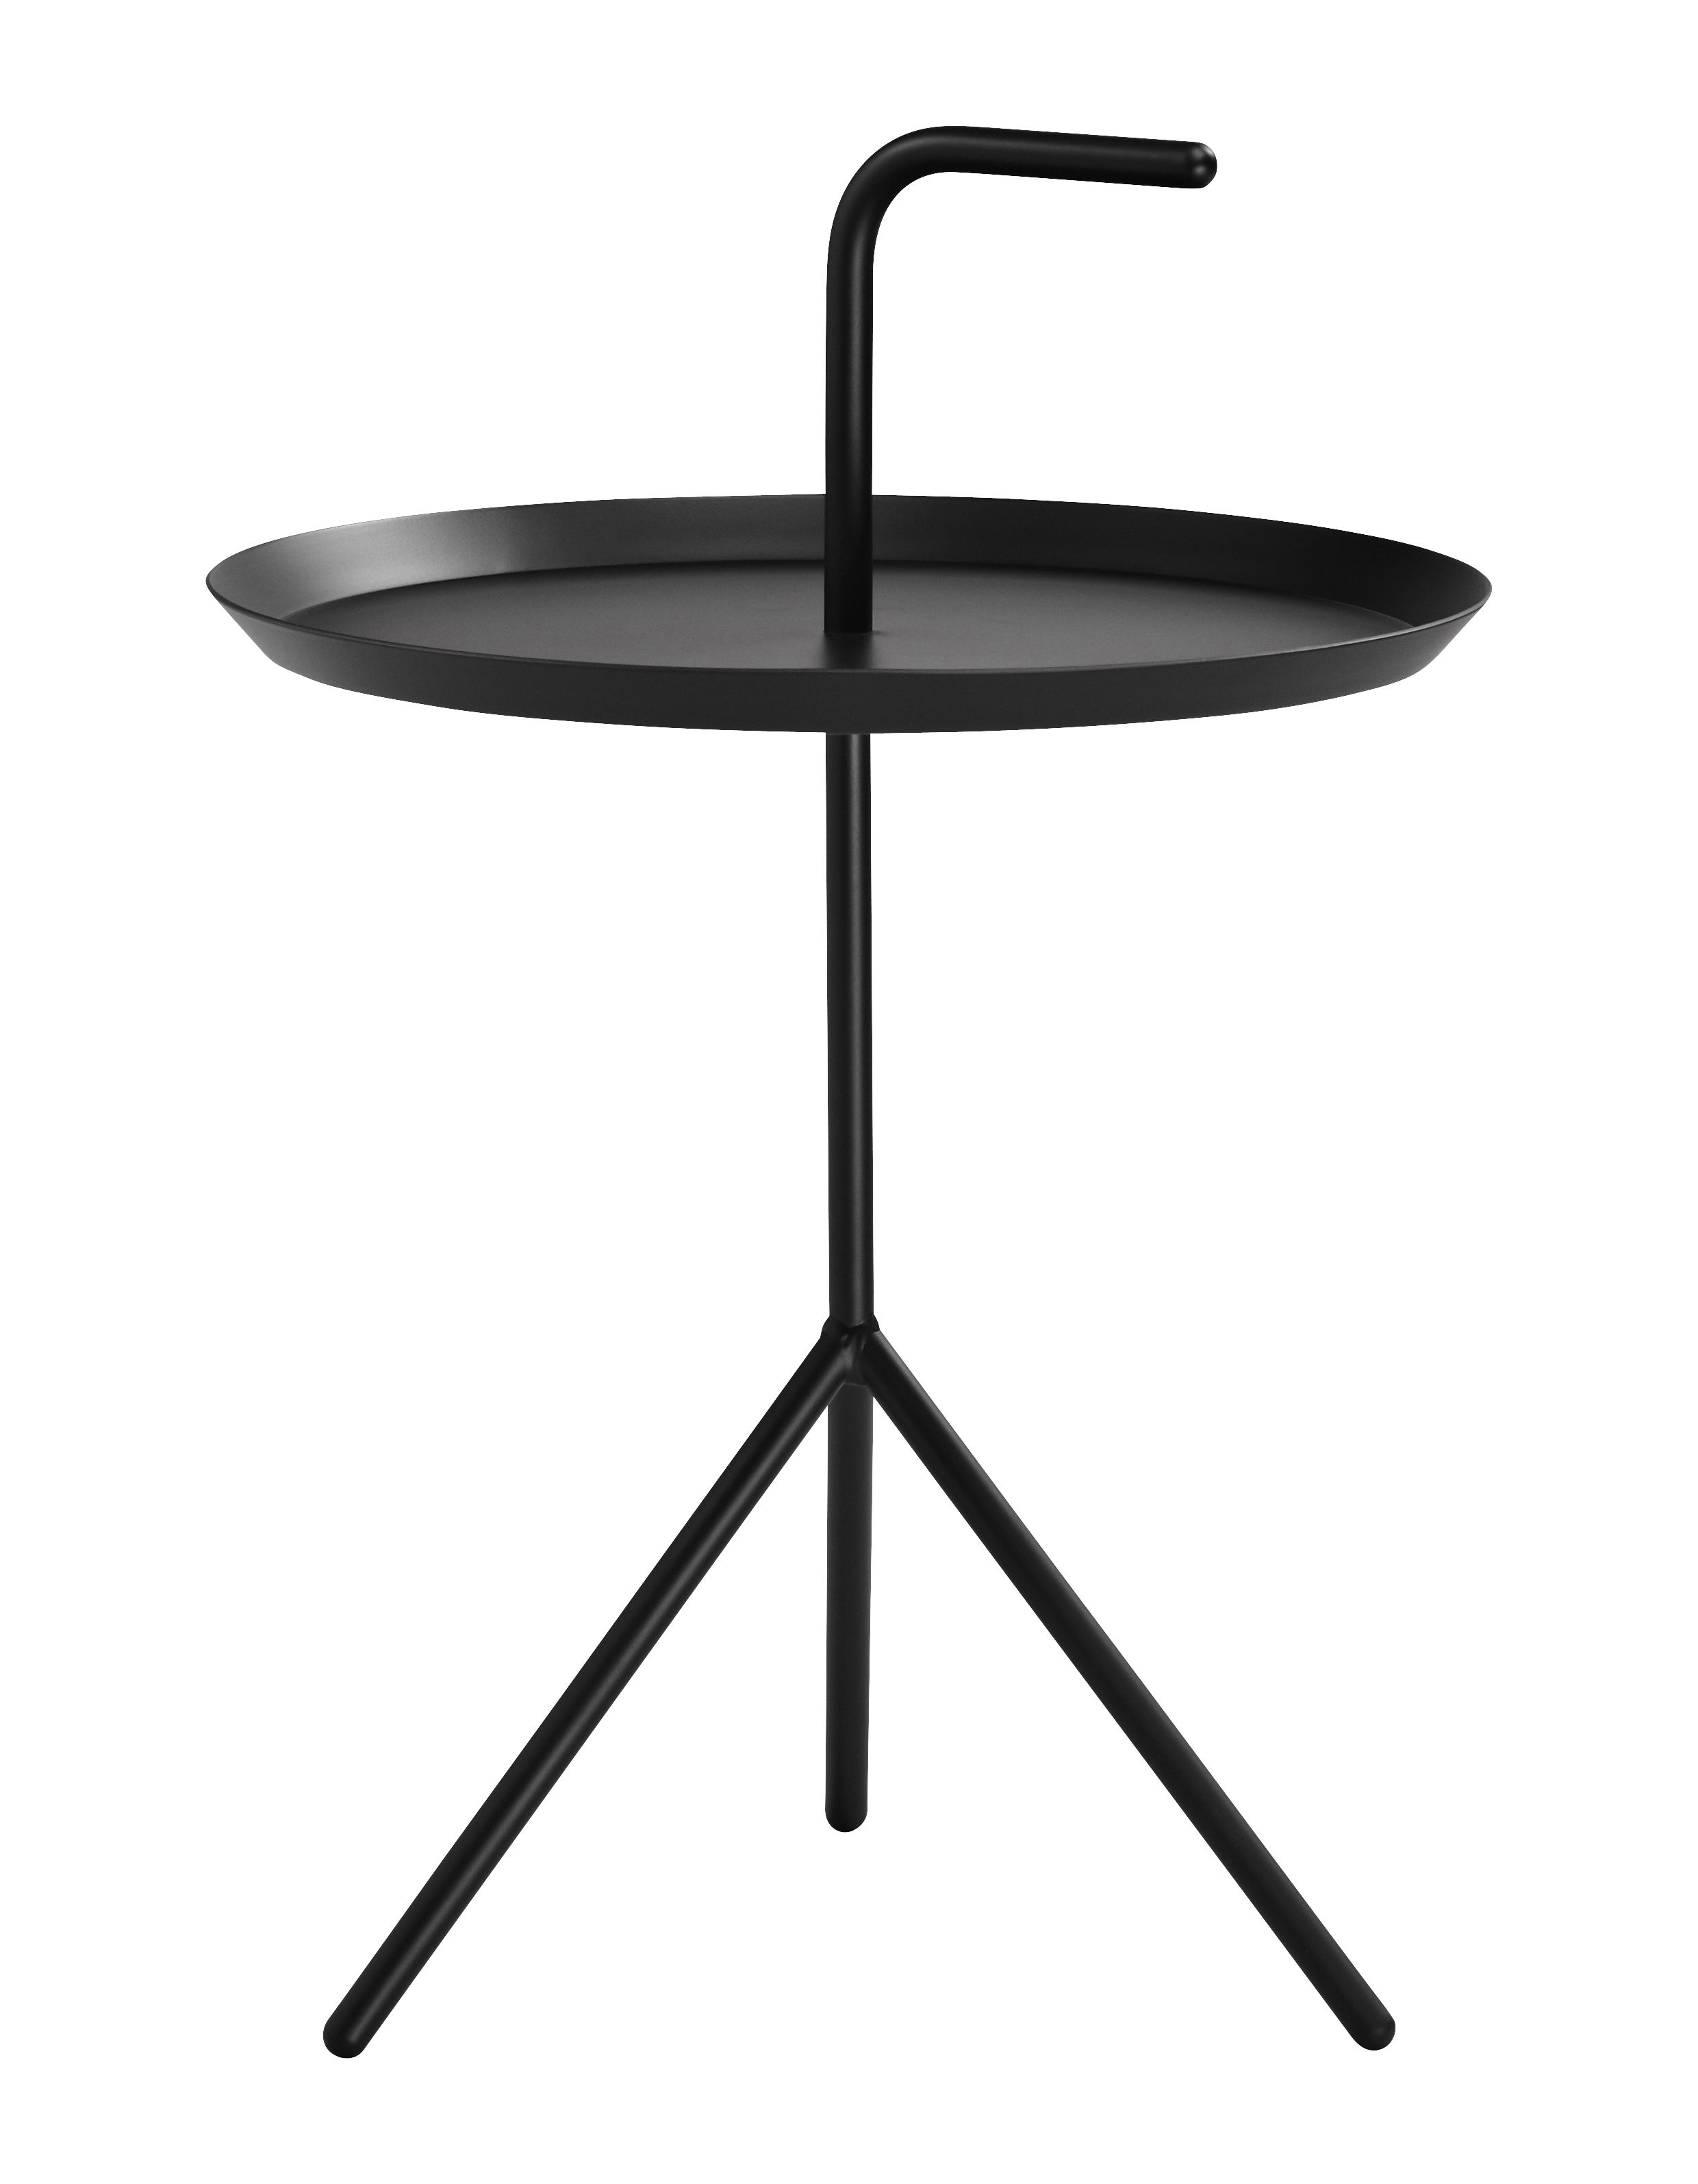 Mobilier - Tables basses - Table basse Don't leave Me / Ø 38 x H 44 cm - Hay - Noir - Acier laqué